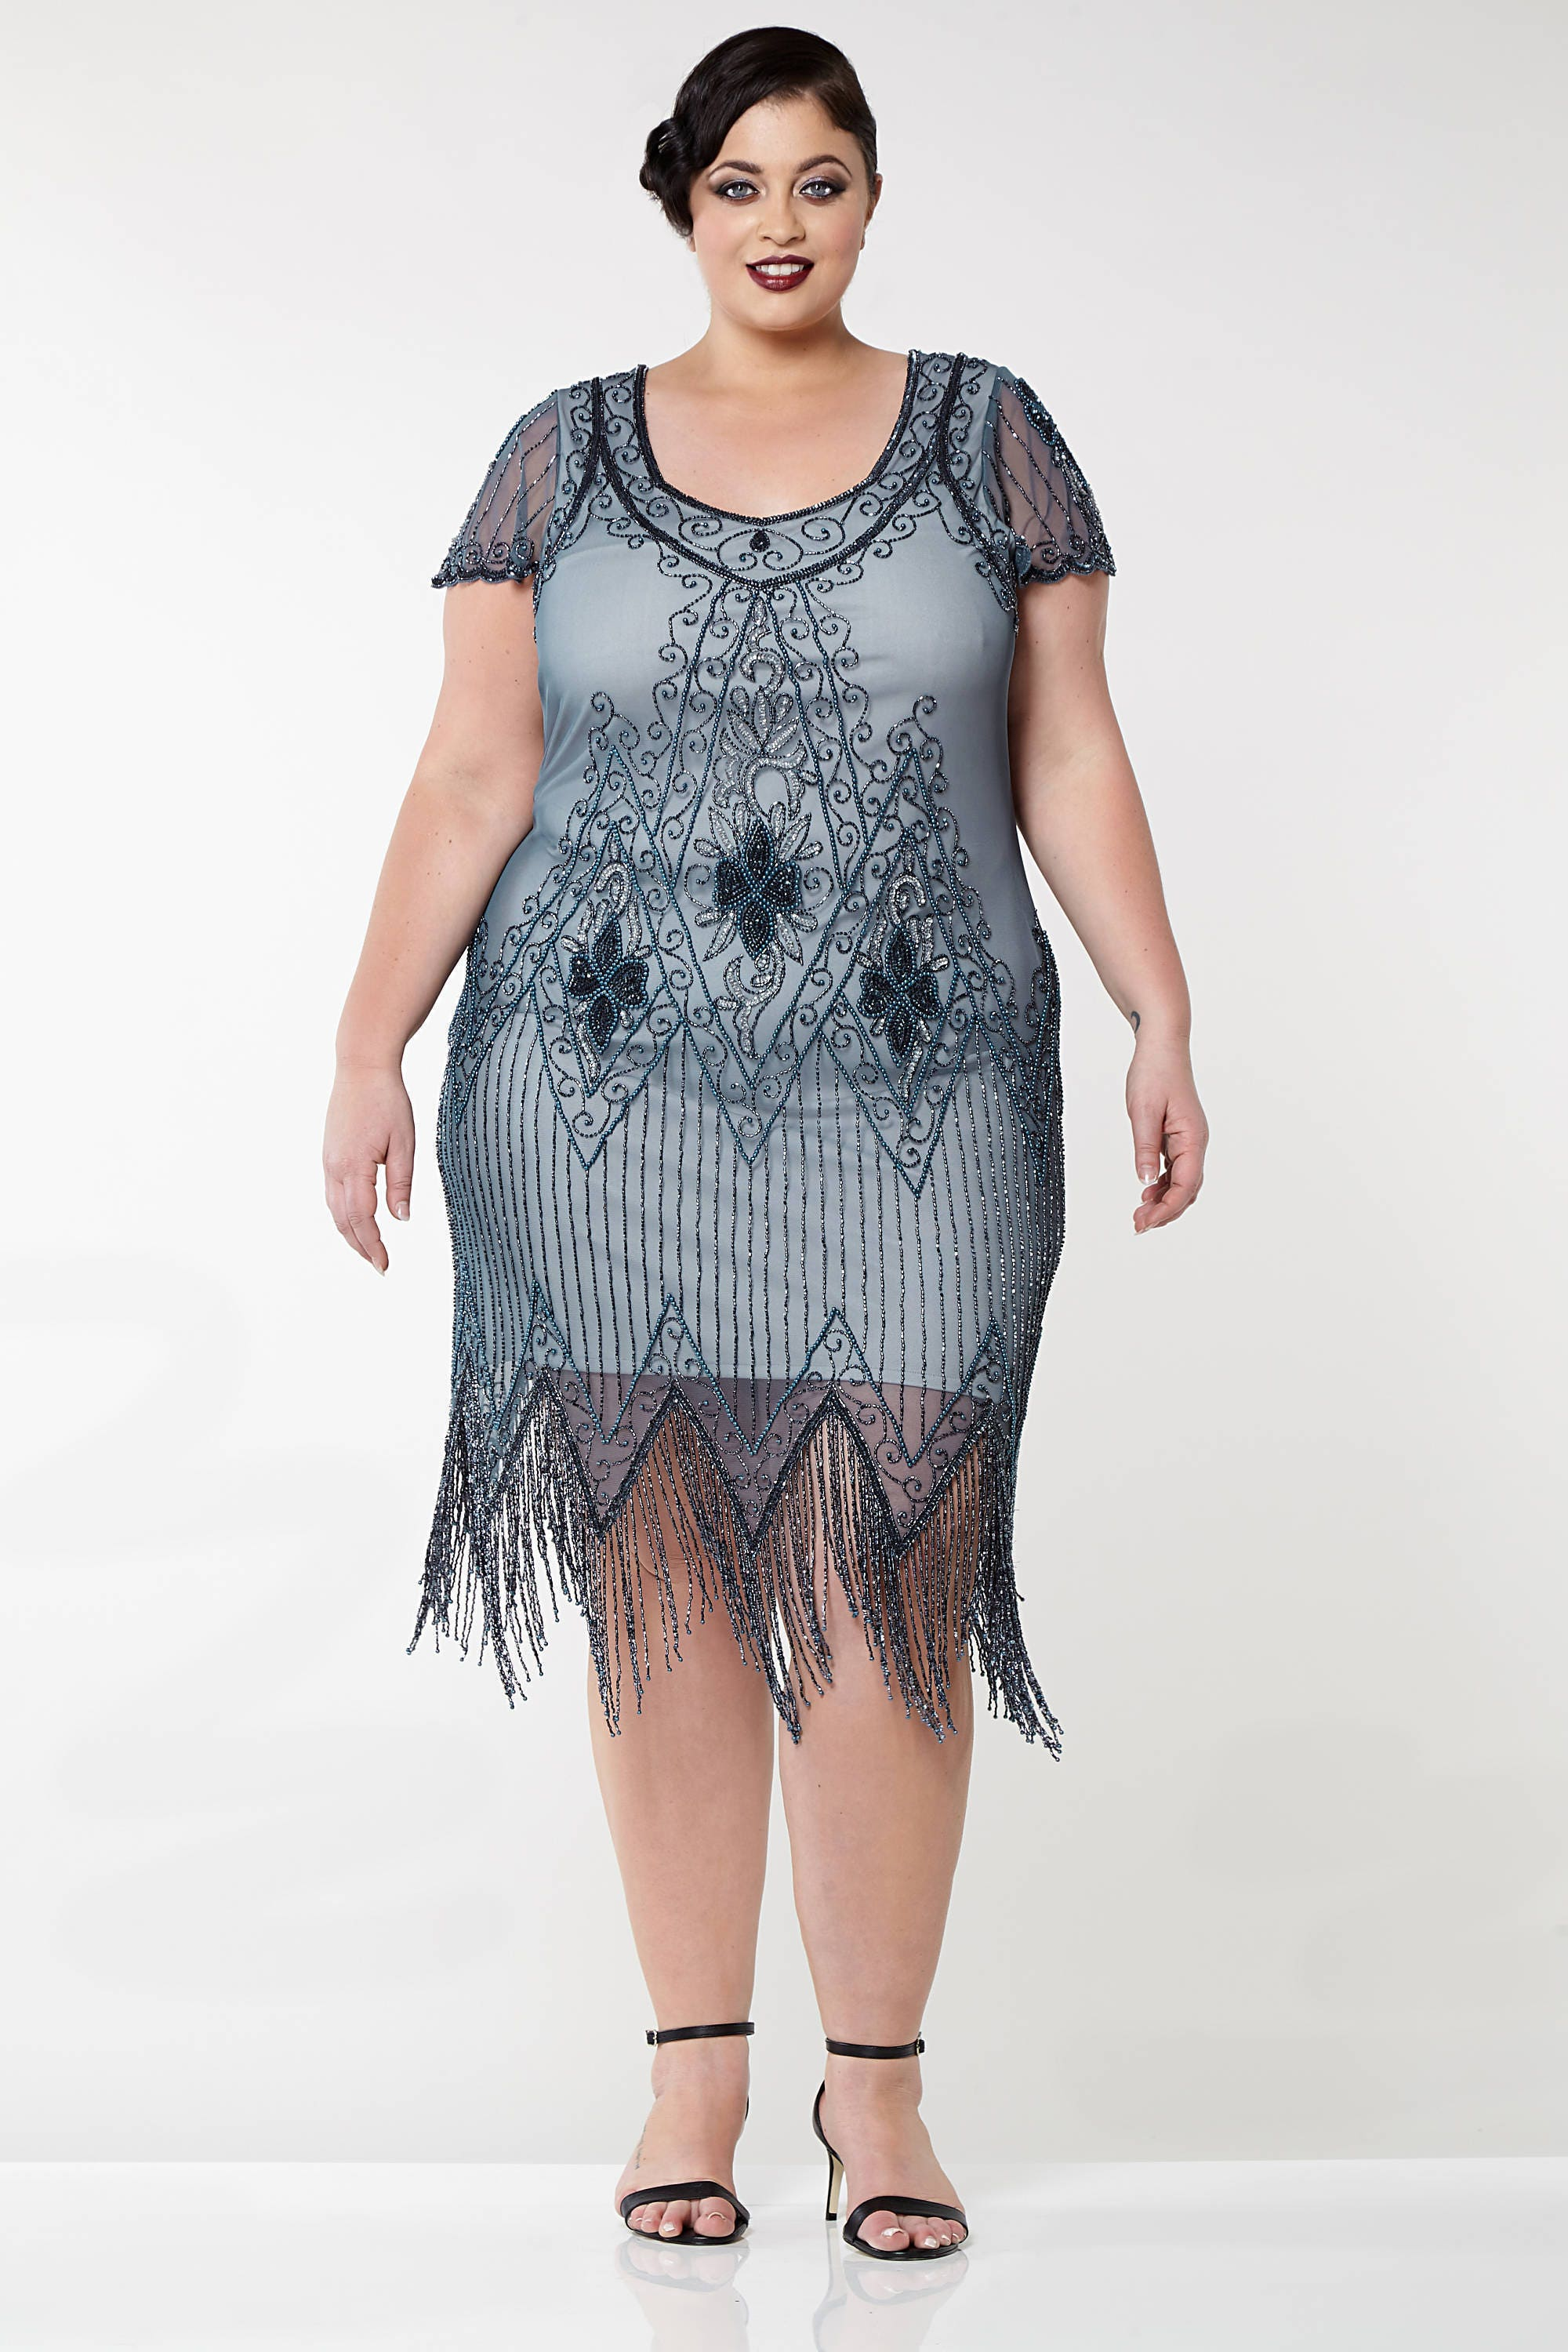 Plus Size 3/4 Bell Sleeve Printed Keyhole Dress with Metallic Studs Add to cart to view price Keeping this secret is one of the ways we keep bringing you top designers and brands at great prices.